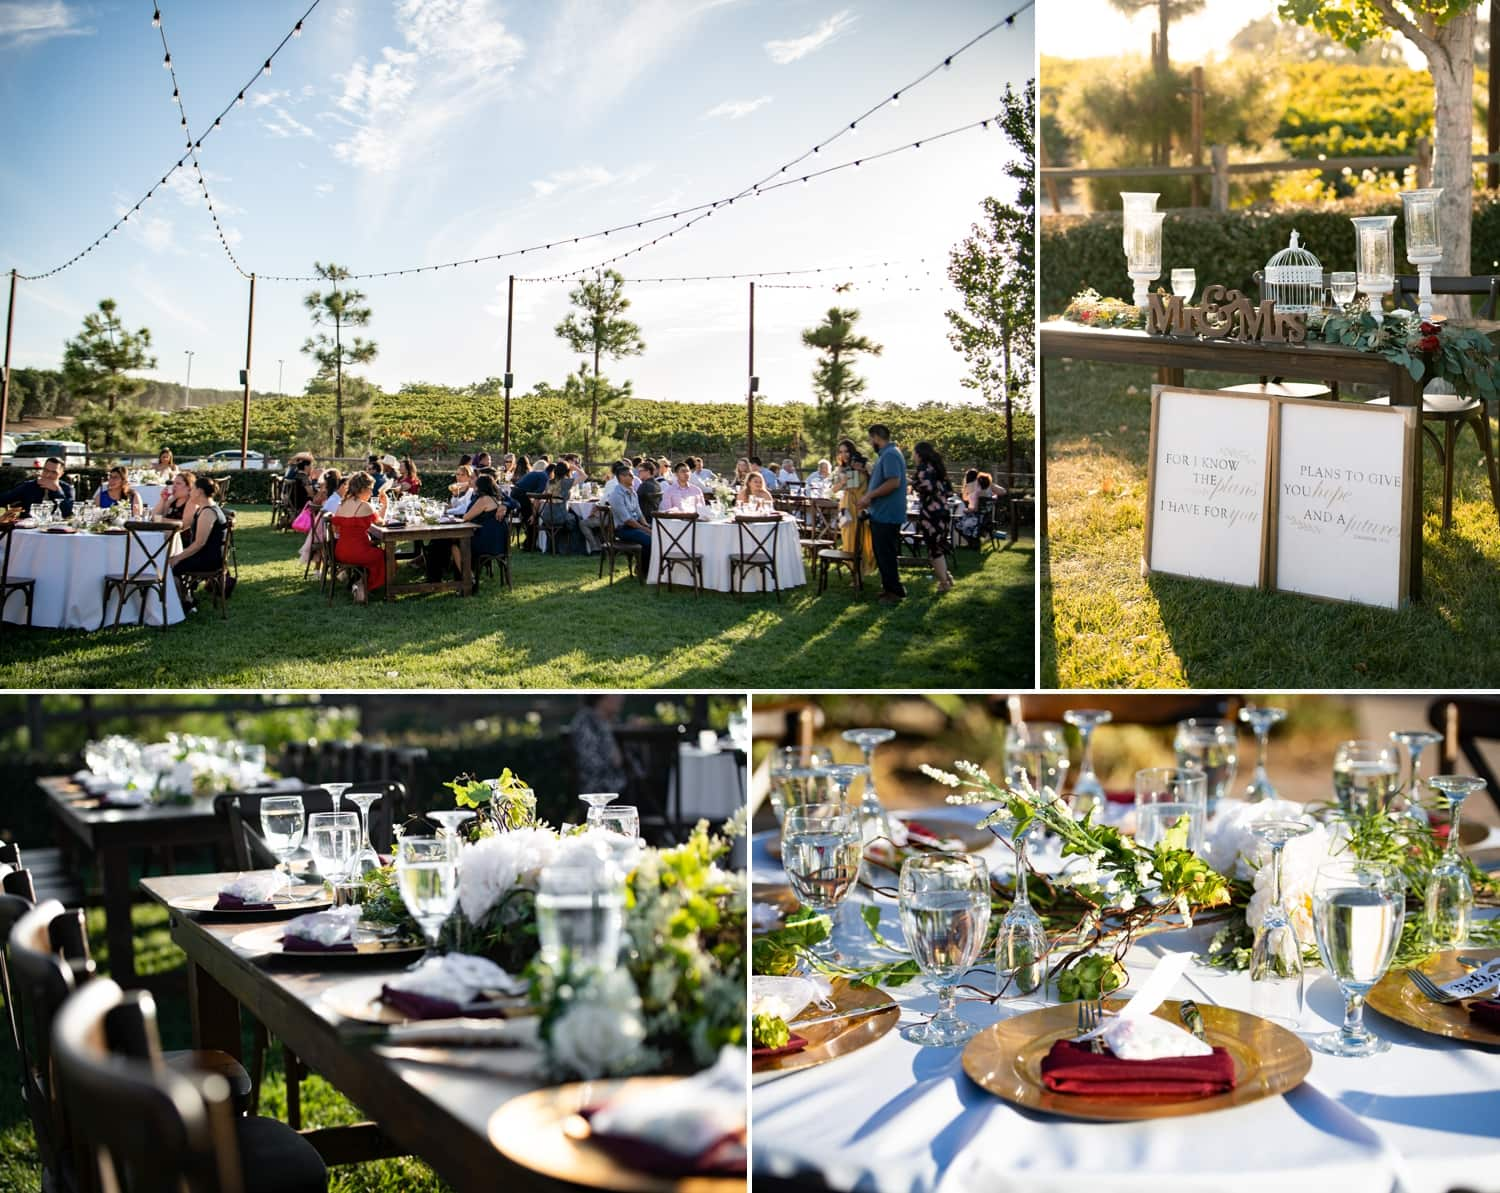 Reception details in Temecula wine country.